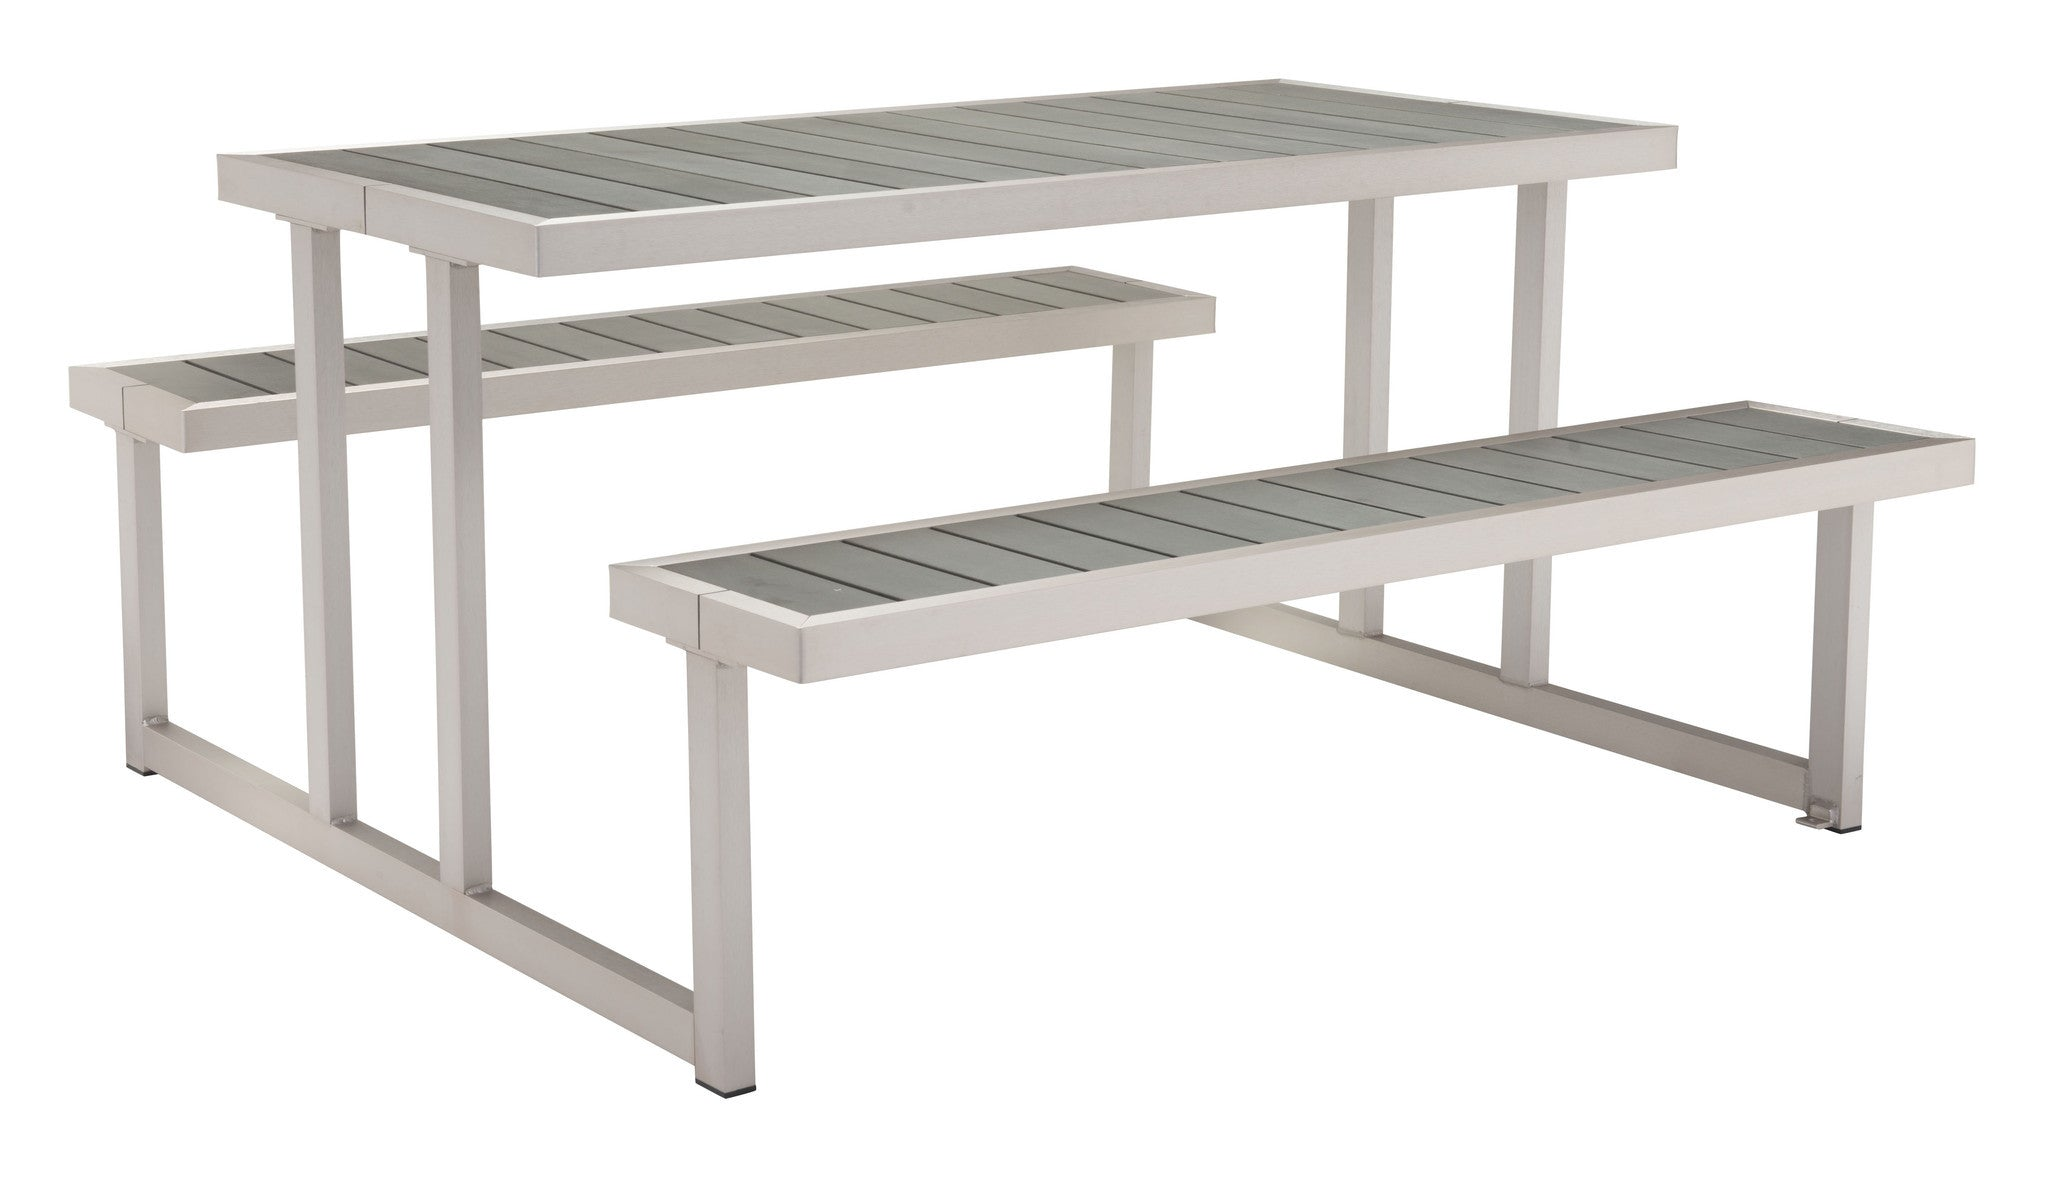 Cuomo Picnic Table Benches With Poly Wood Tops On Galvanized Aluminu - Galvanized picnic table frame